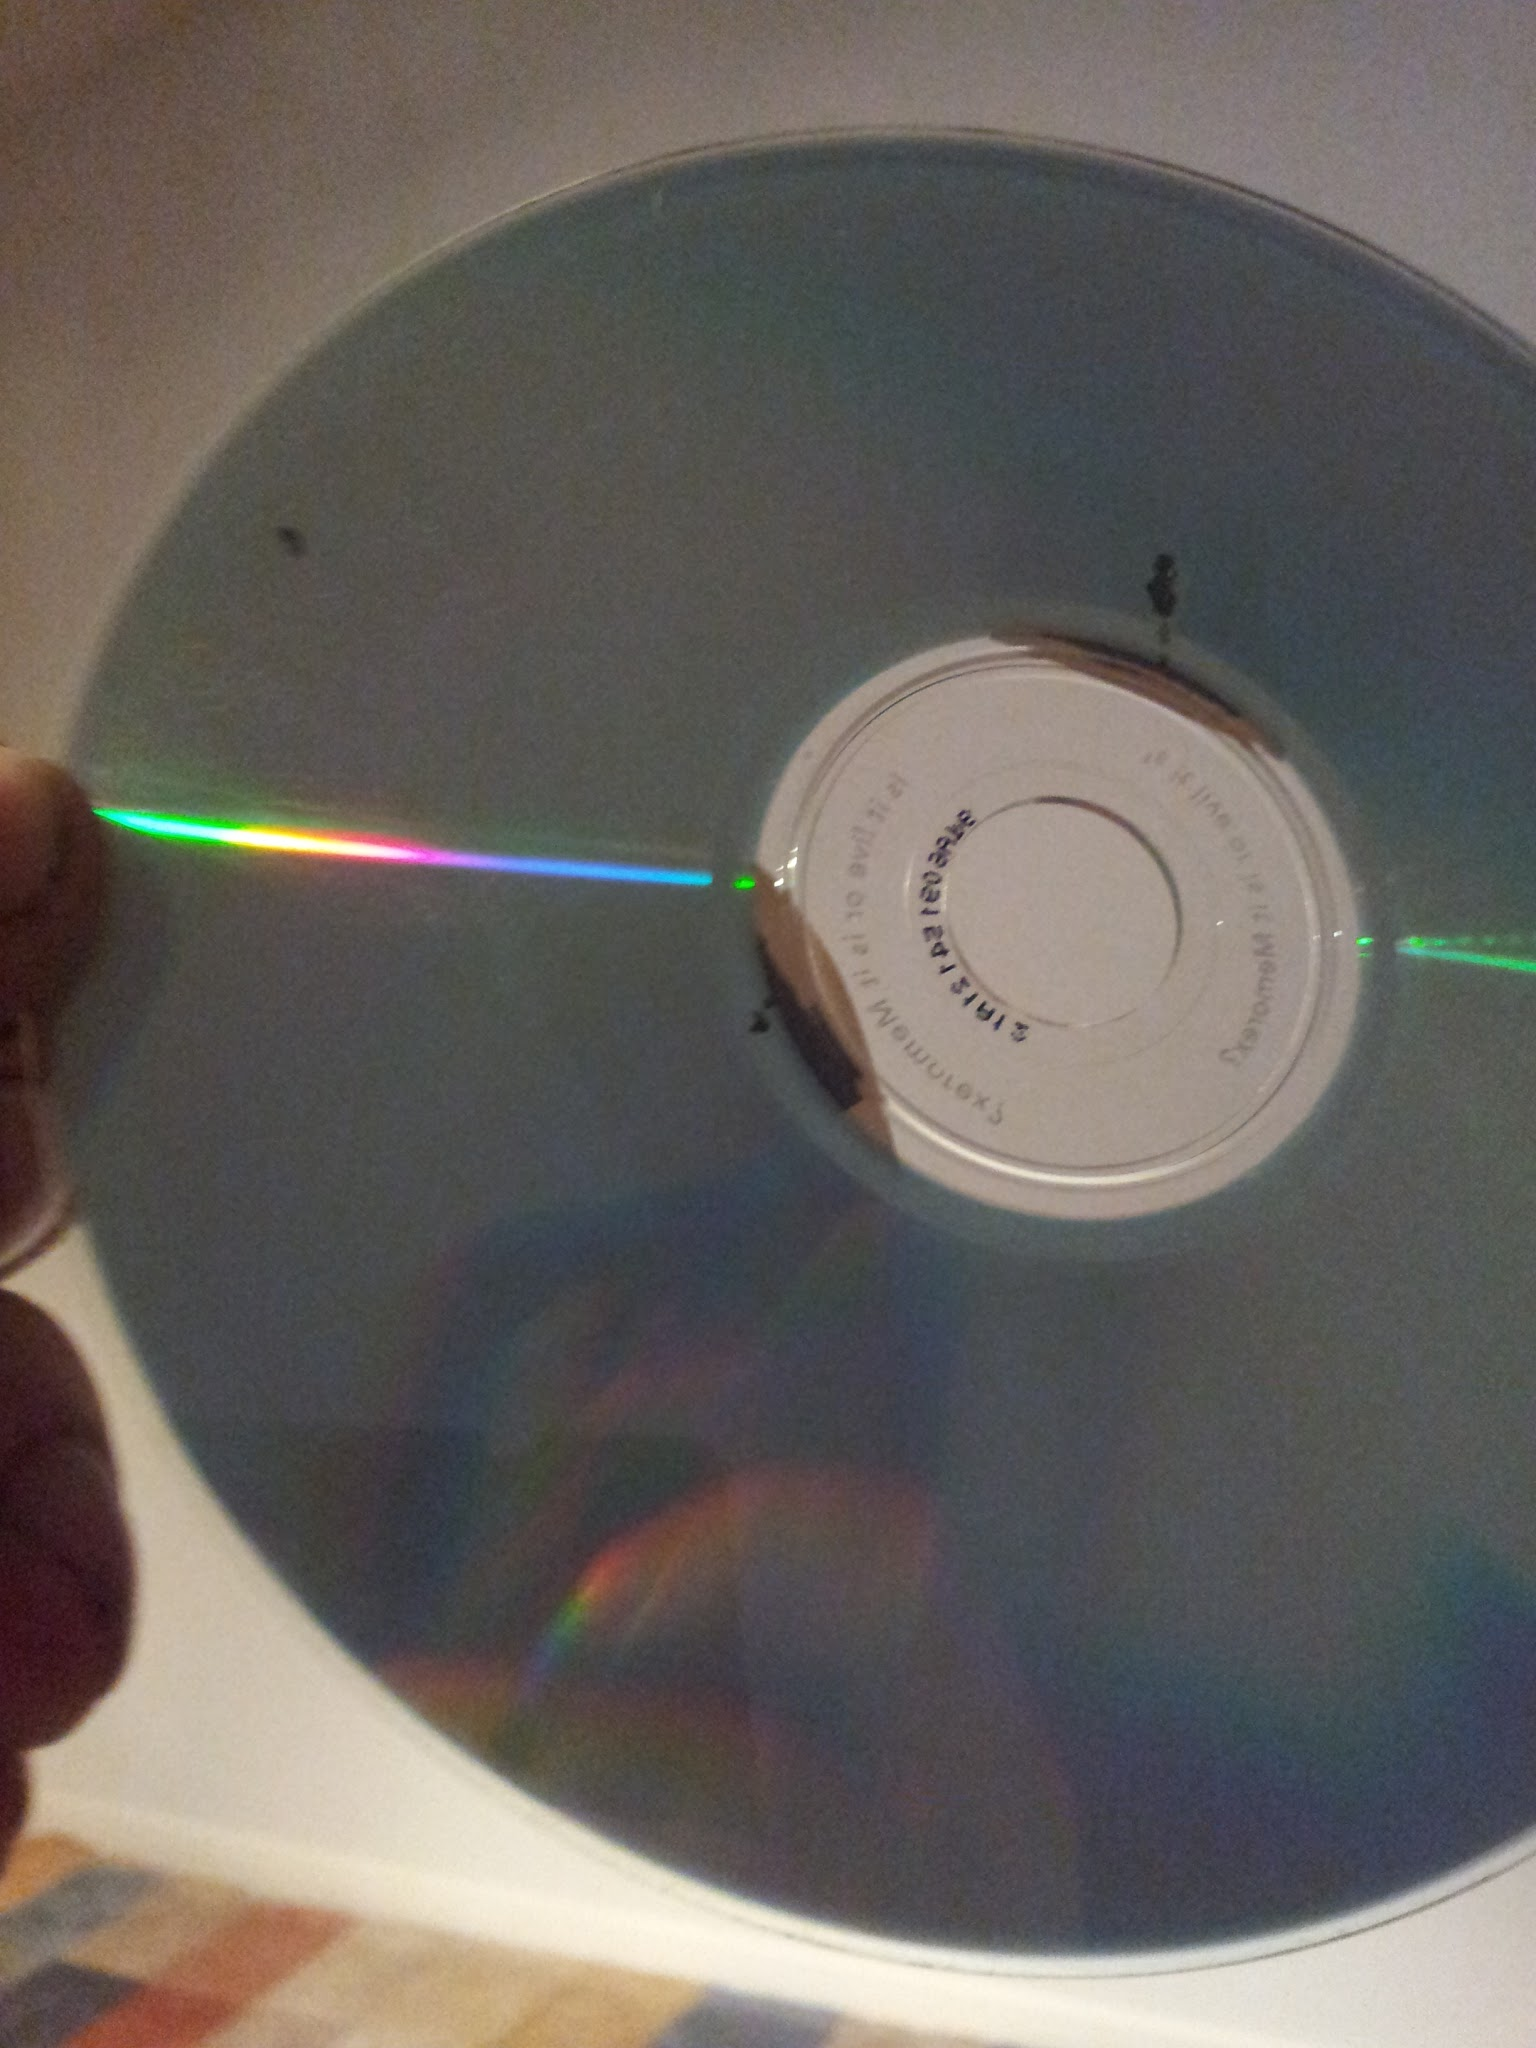 Data side of the CD showing holes in the data foil